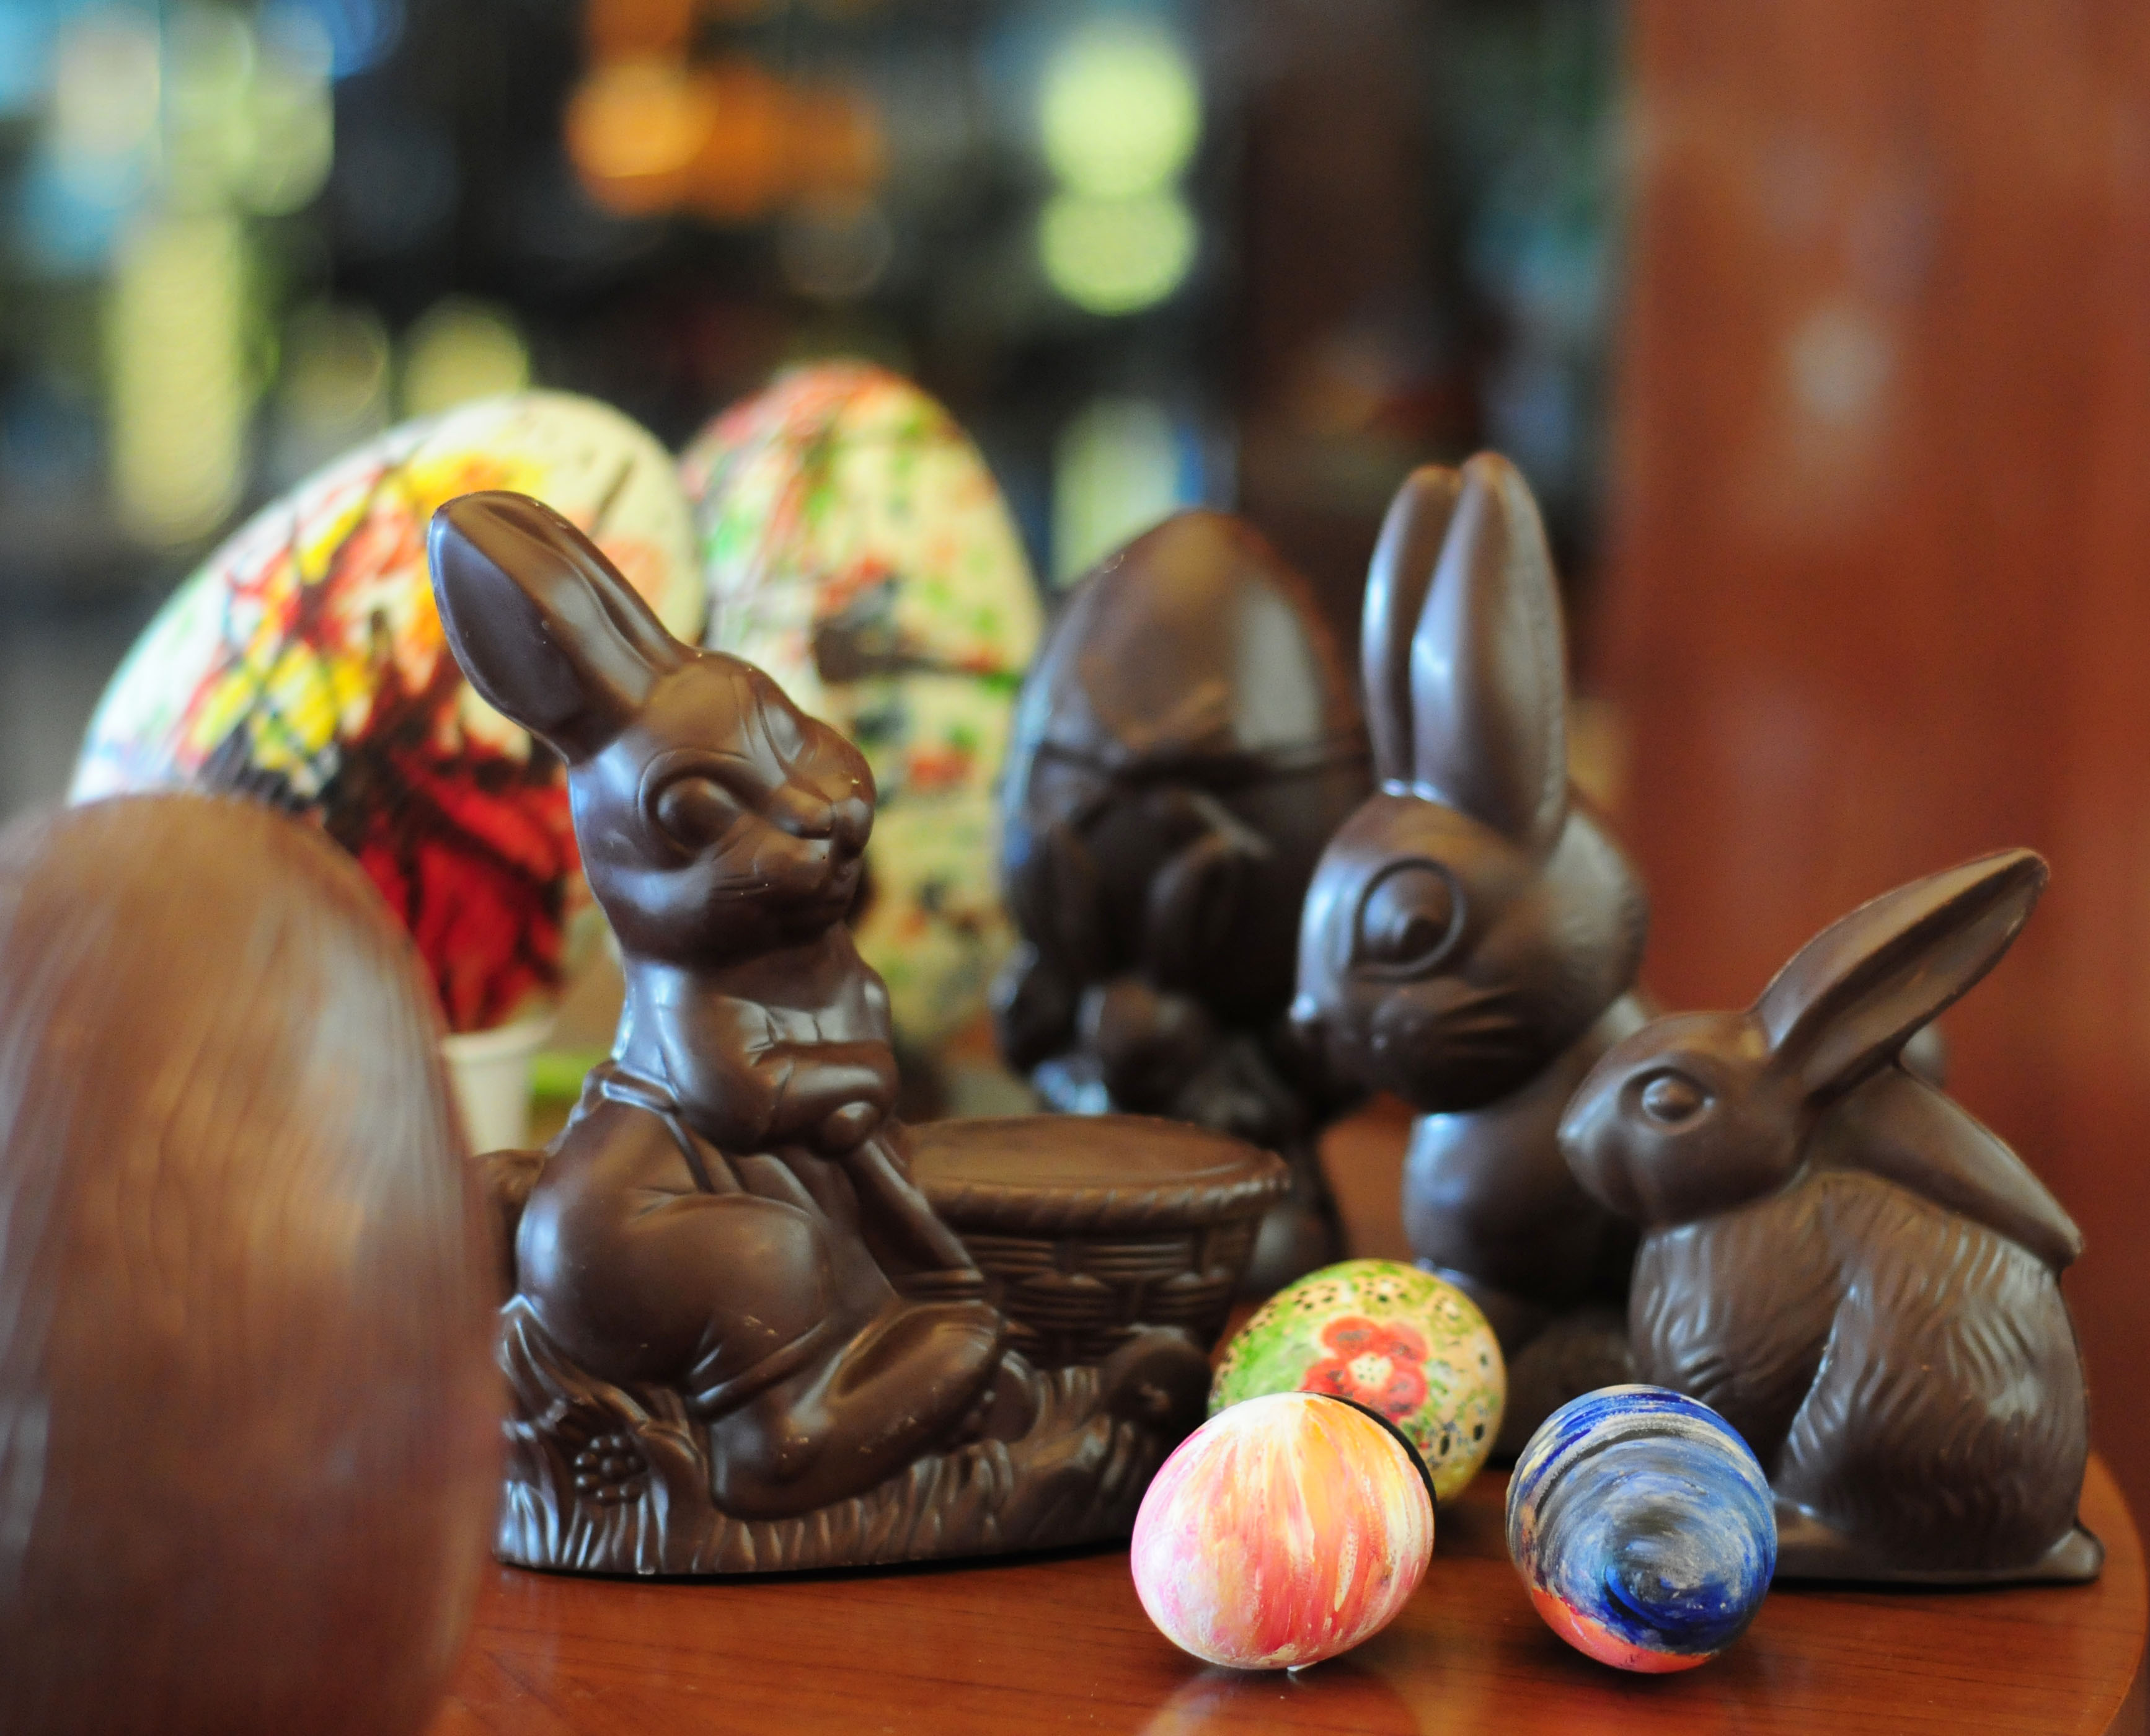 http://highend-traveller.com/exquisite-easter-celebrations-at-the-st-regis-bali-resort/